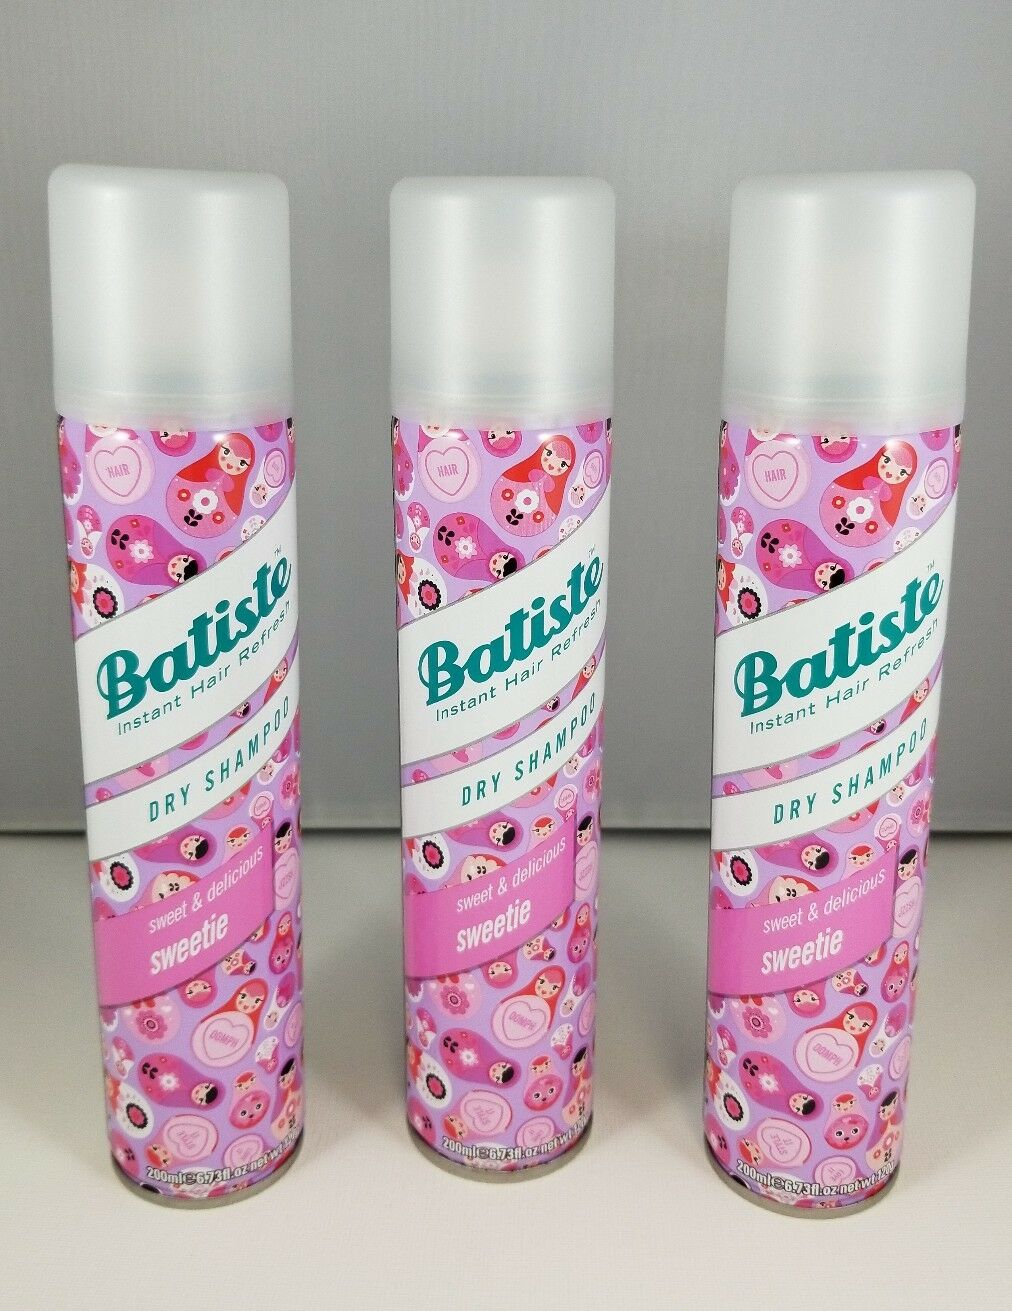 Lot Of 3 Batiste Dry Shampoo Sweet Delicious Sweetie 673 Oz Each Wild 1 3only Available